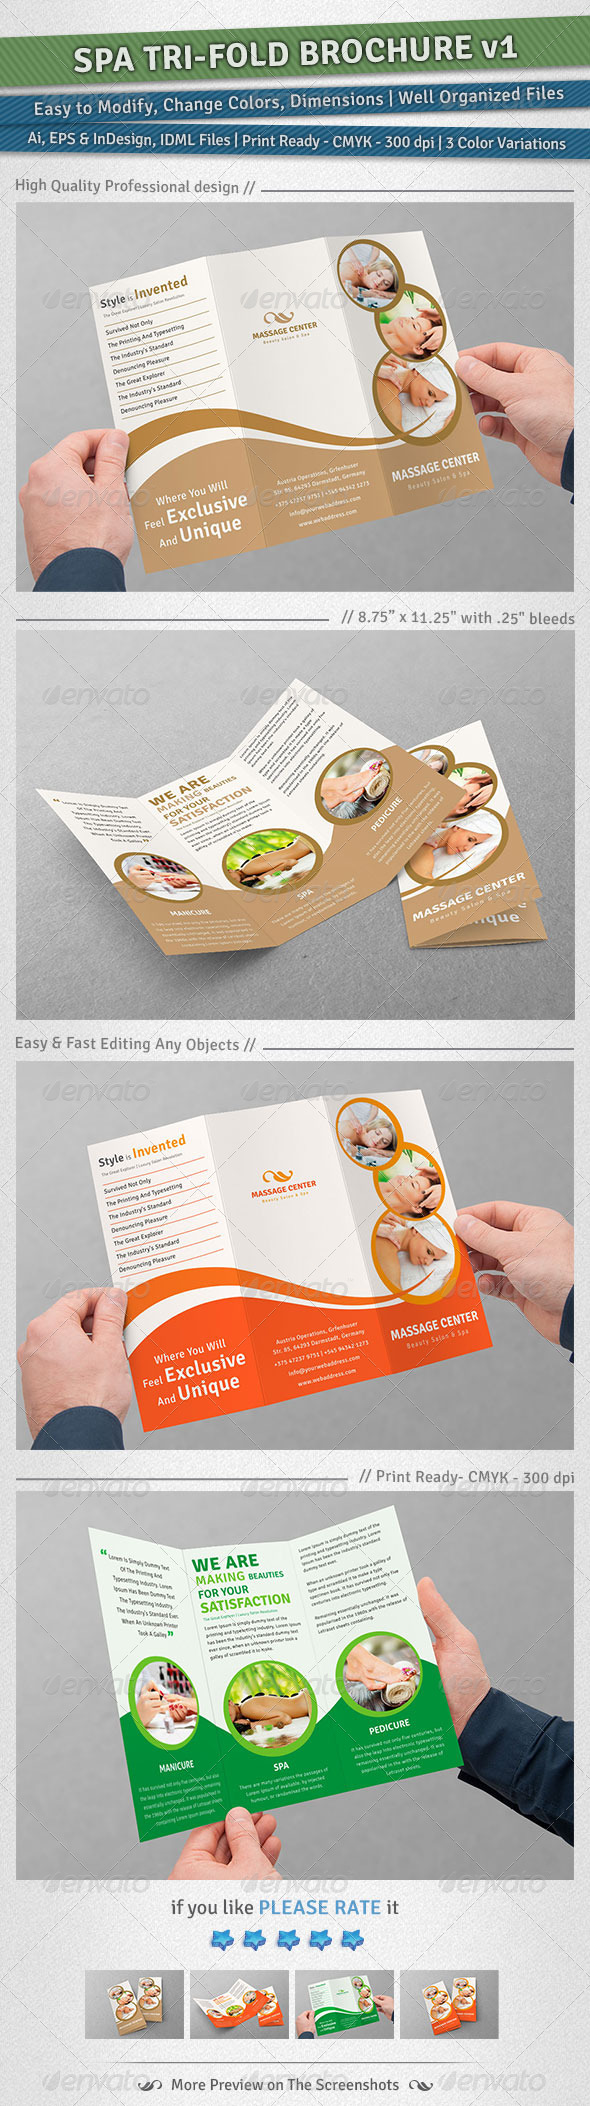 Spa Tri-Fold Brochure | Volume 1 - Corporate Brochures